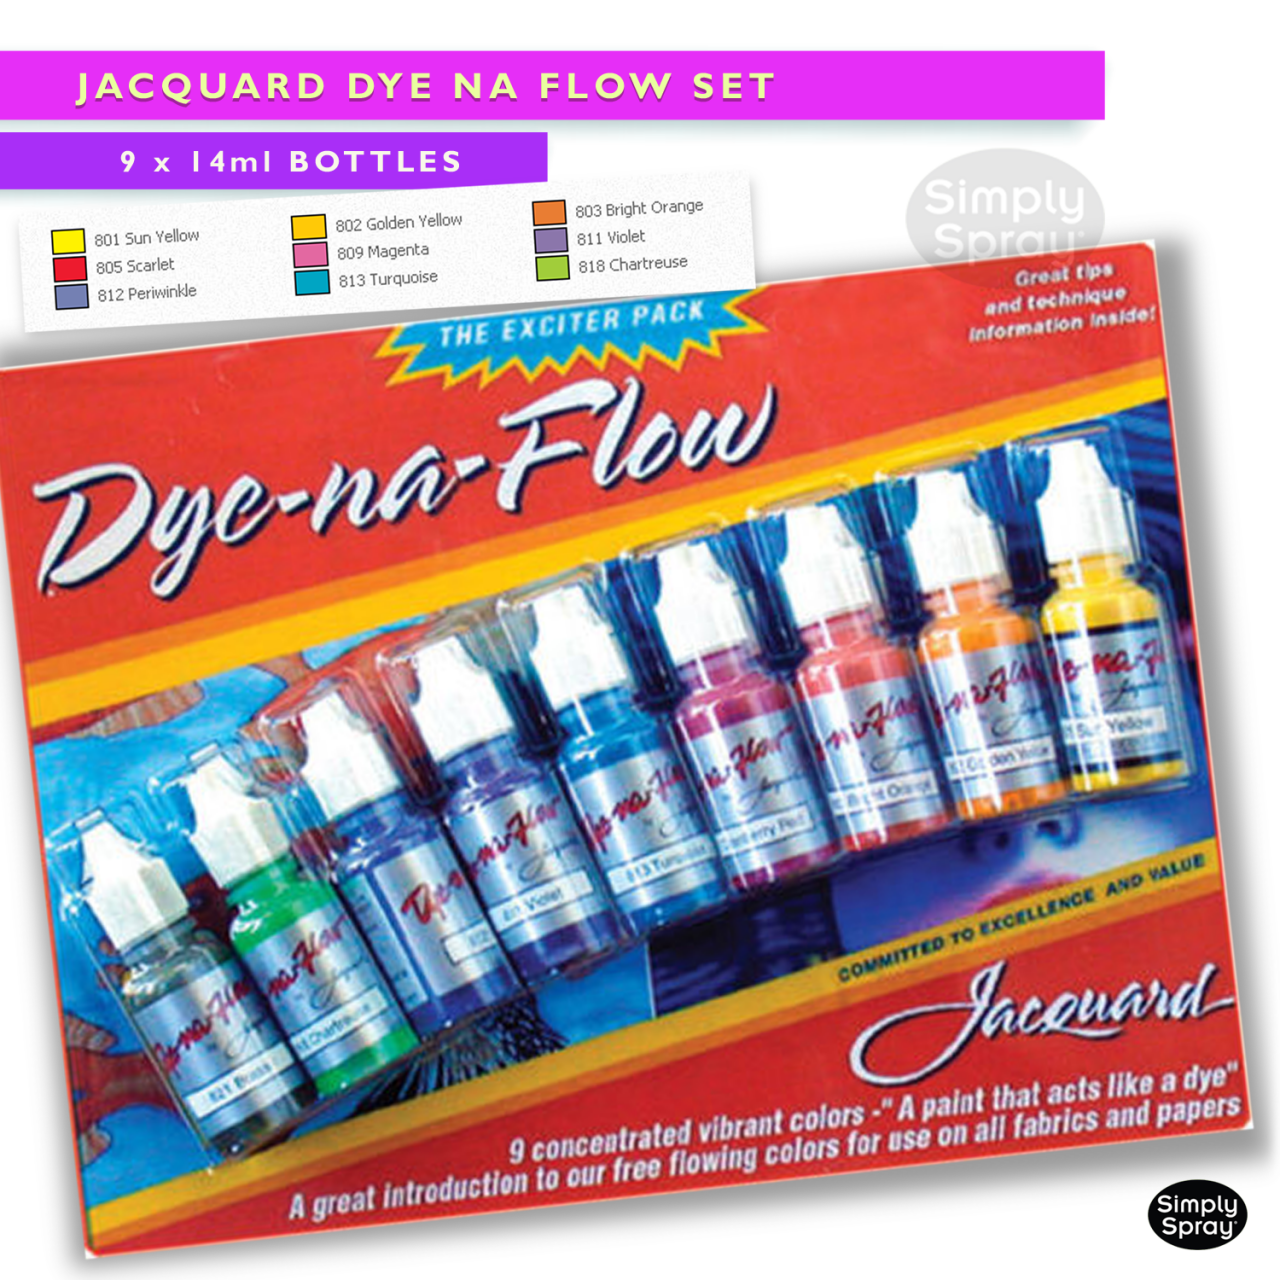 jacquard dye na flow. Paint for use on all fabrics and papers.